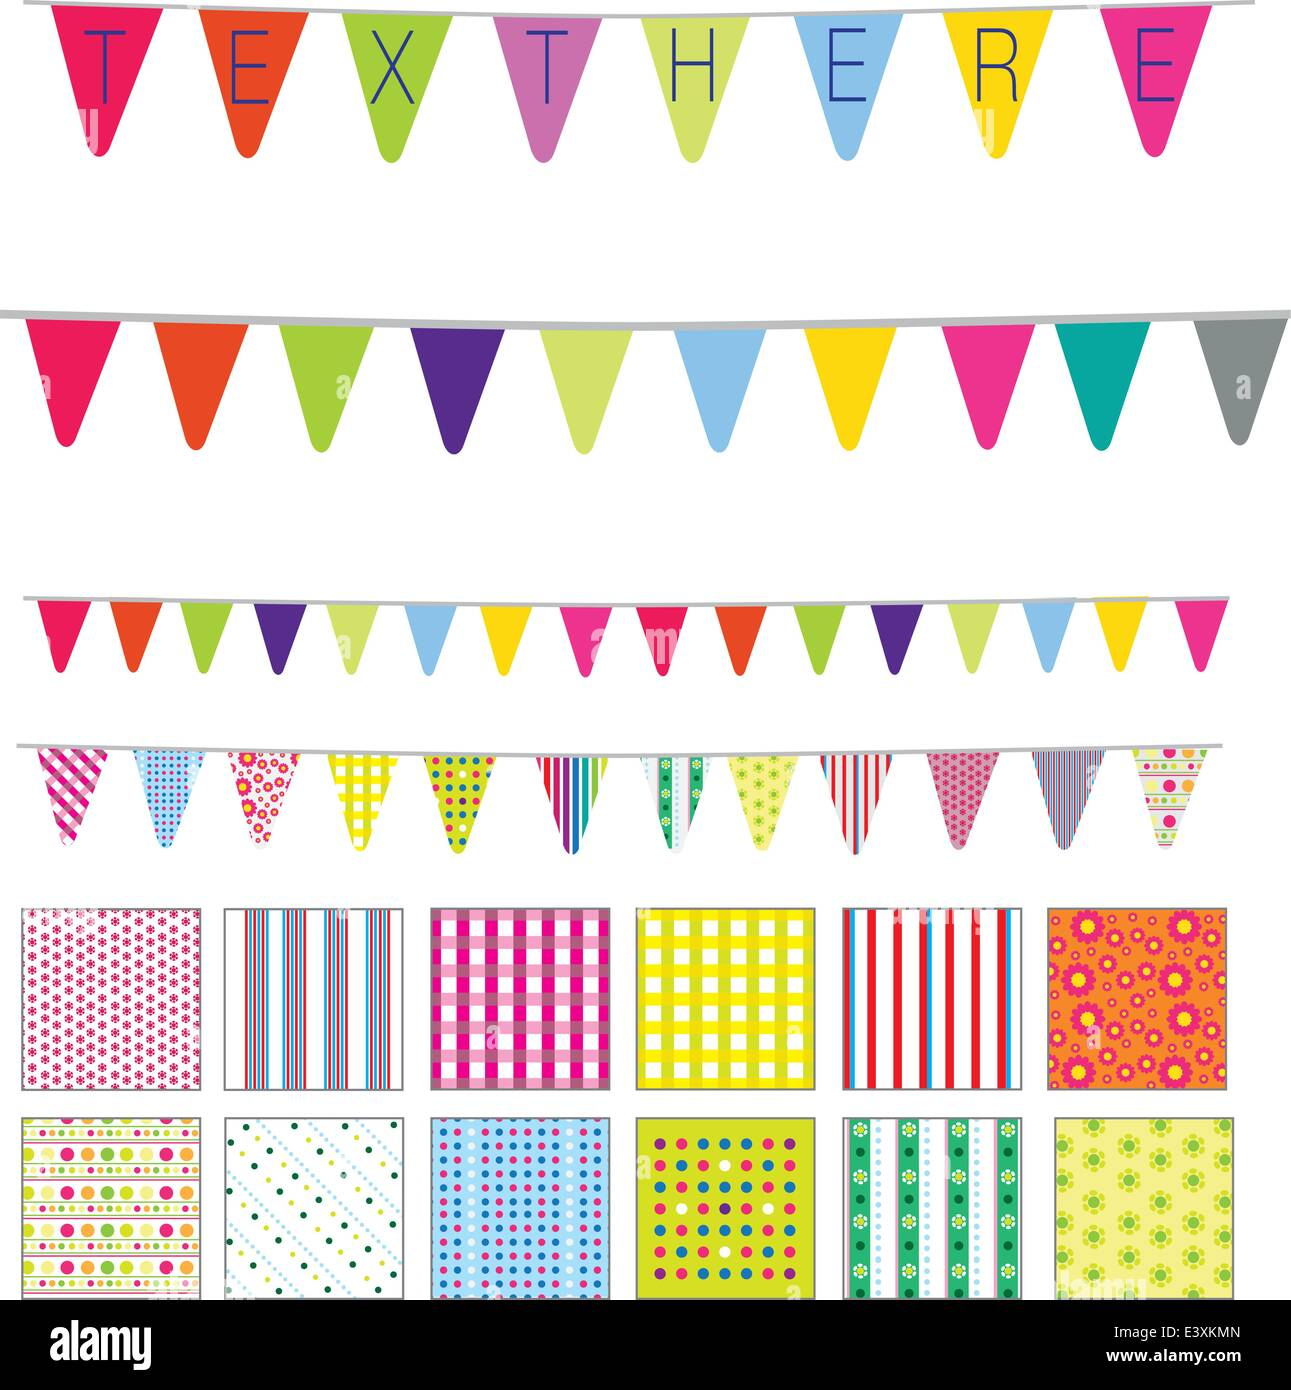 patterns and banners in a retro cute style, spots, stripes and flowers motifs Stock Vector